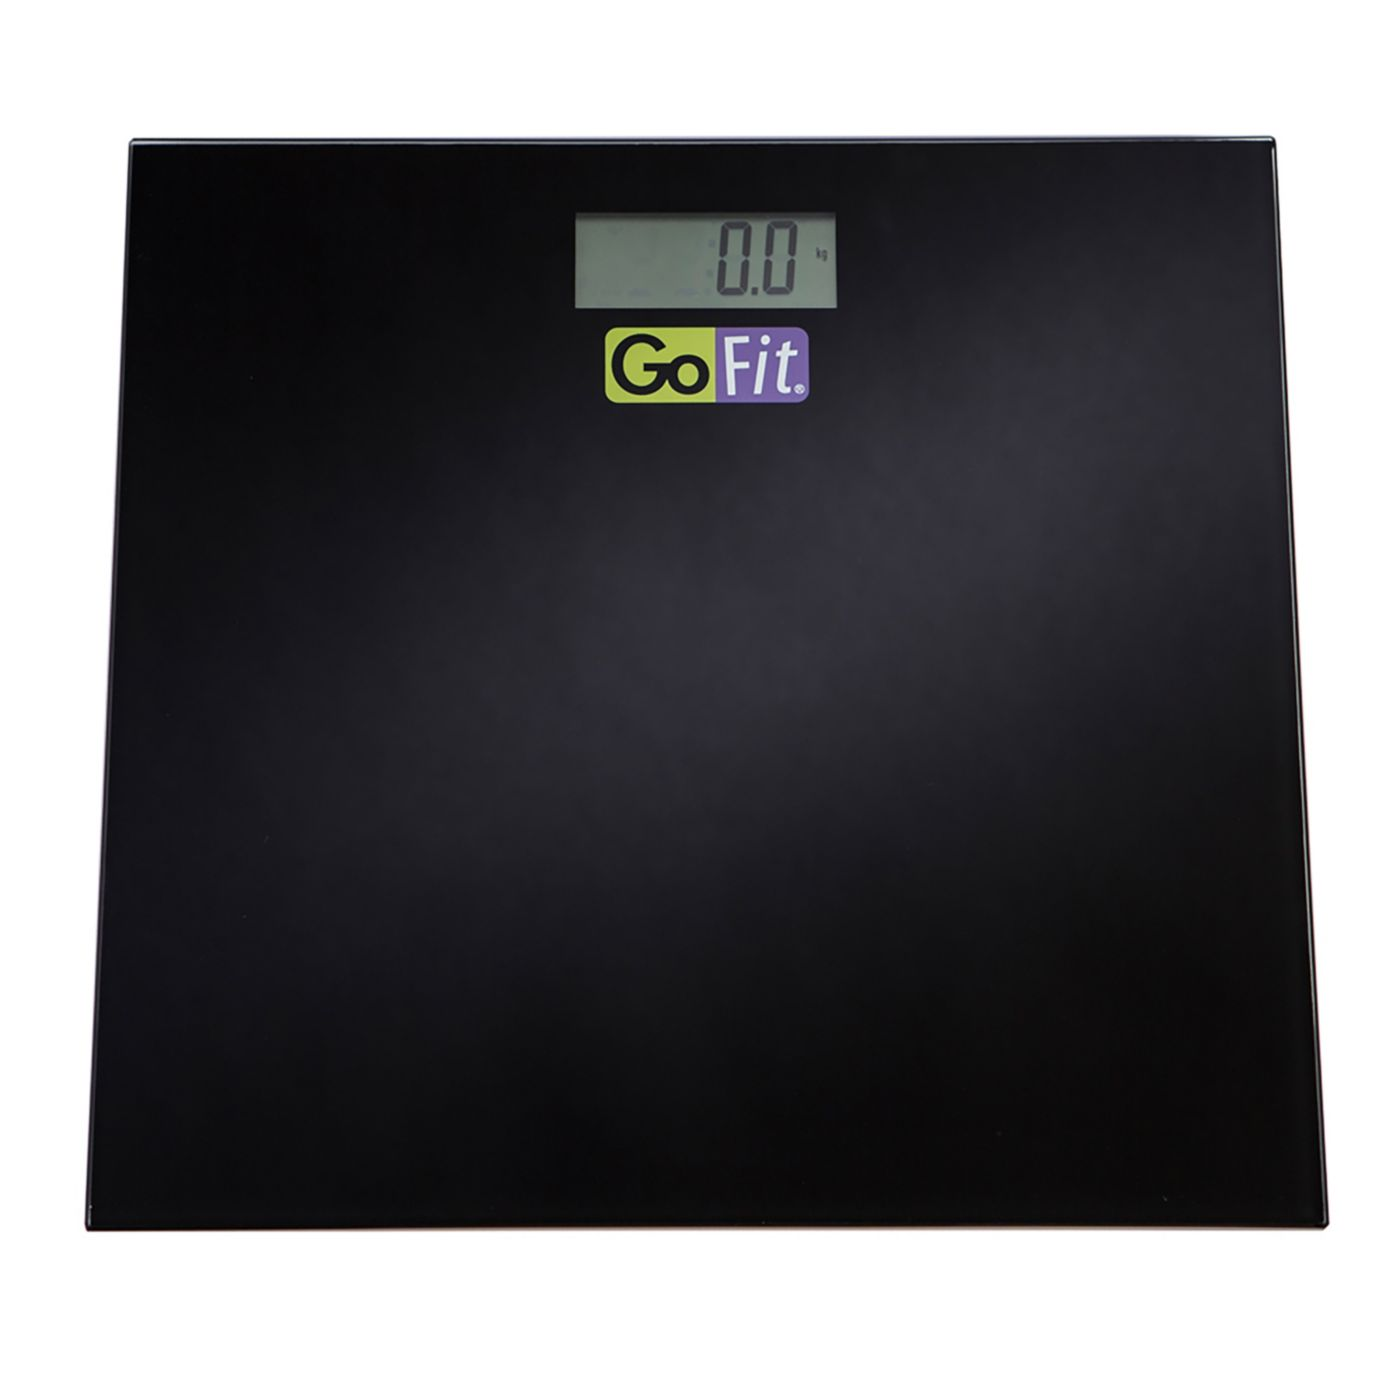 GoFit Glass Scale